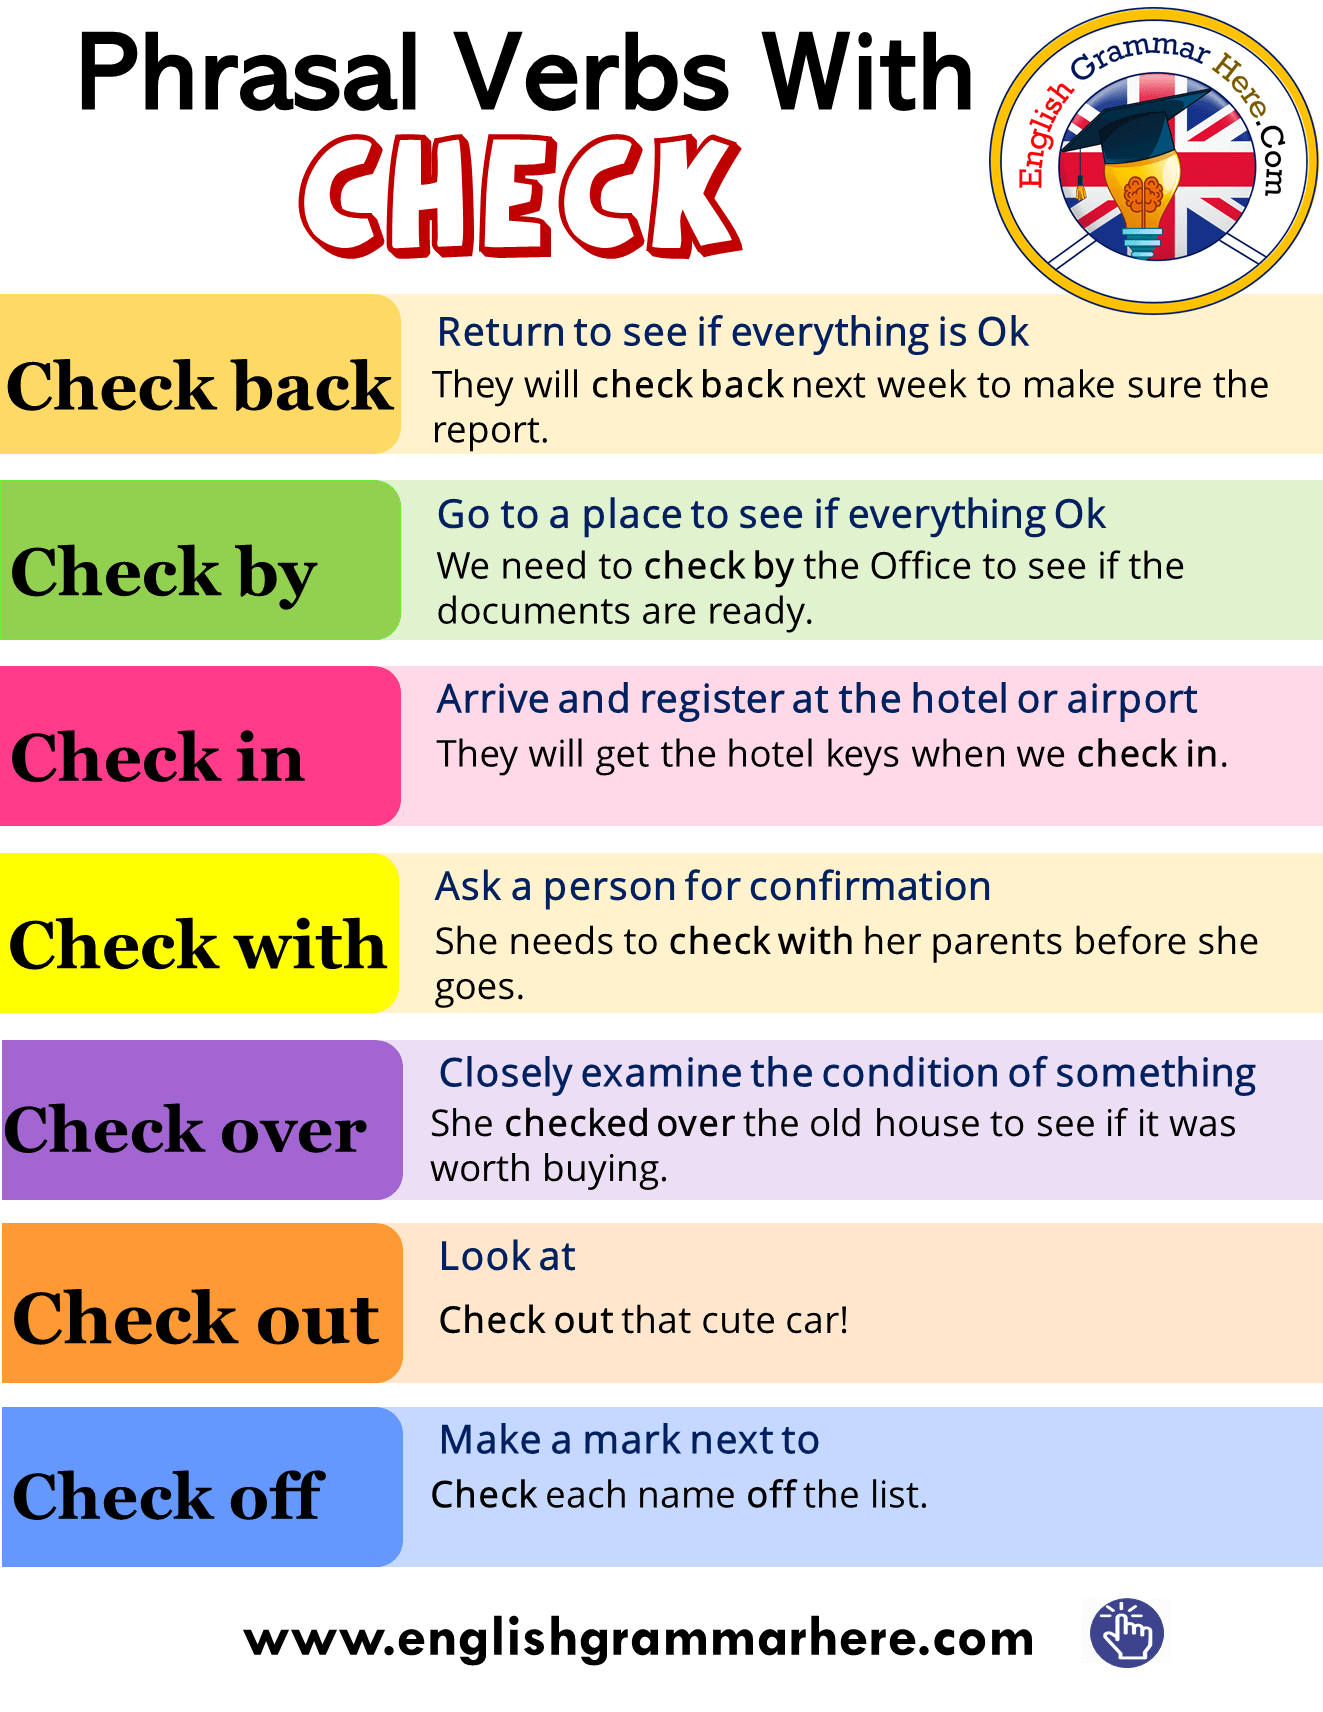 Phrasal Verbs With CHECK in English